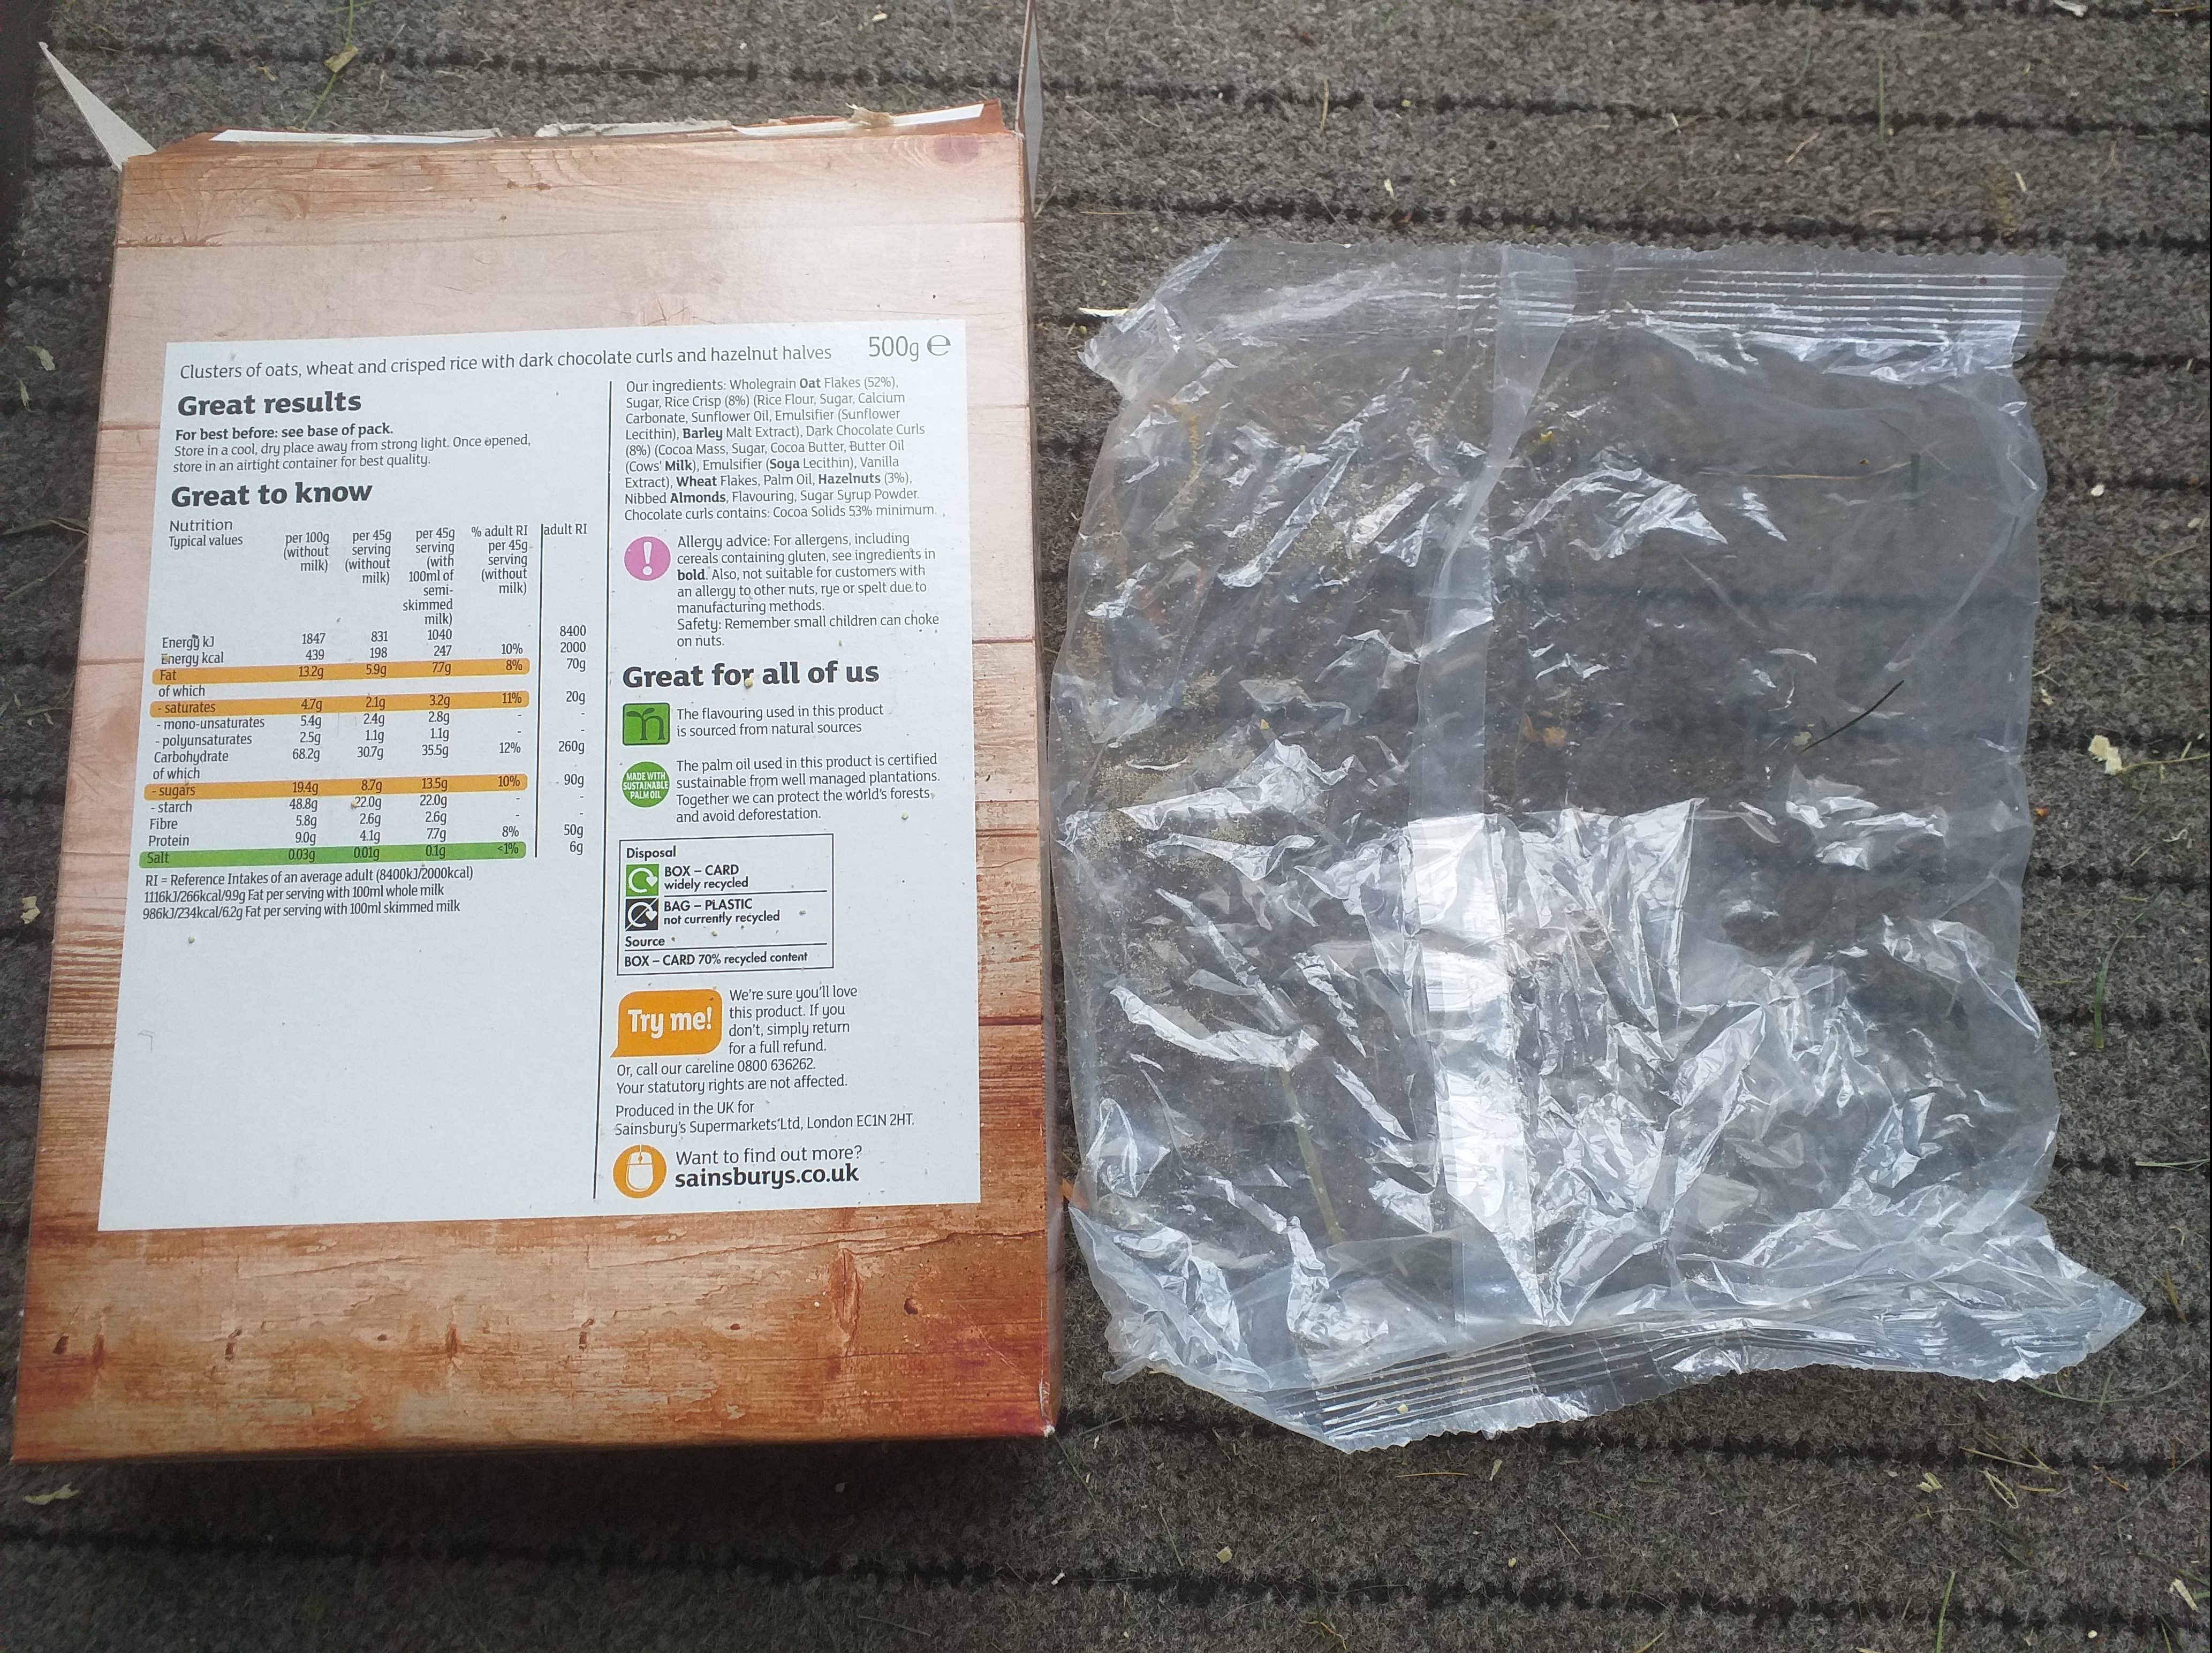 Cardboard can be recycled, but not the film bag inside covering the cereal